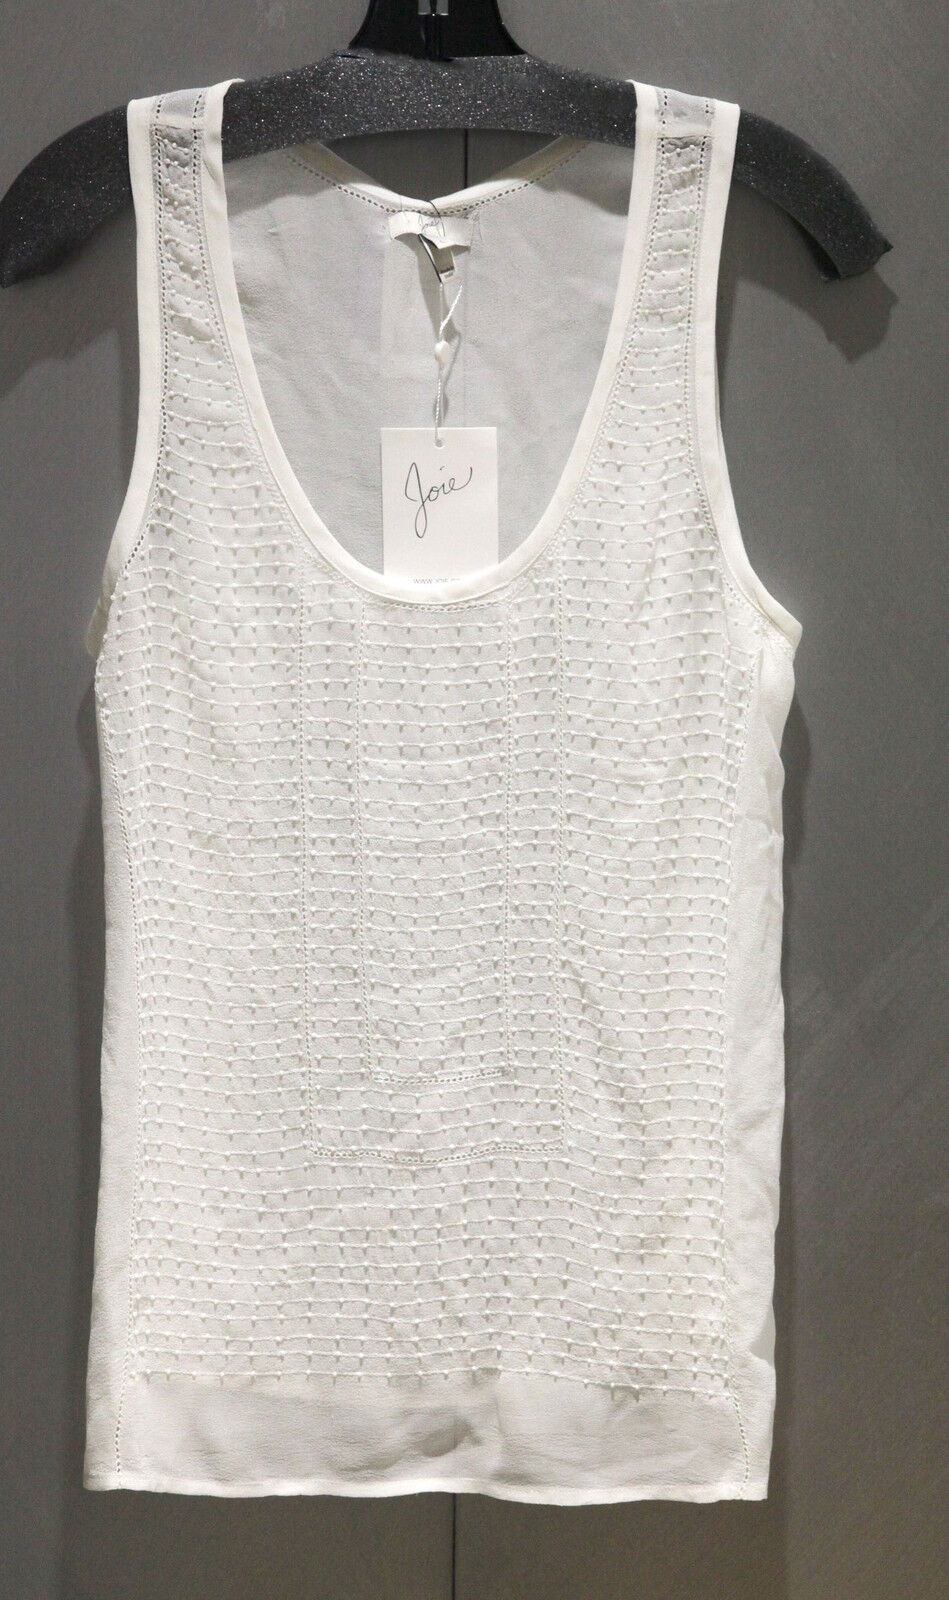 NWT Joie Denbra Ivory Beaded Sleeveless Blouse Top Sz L  Free Shipping